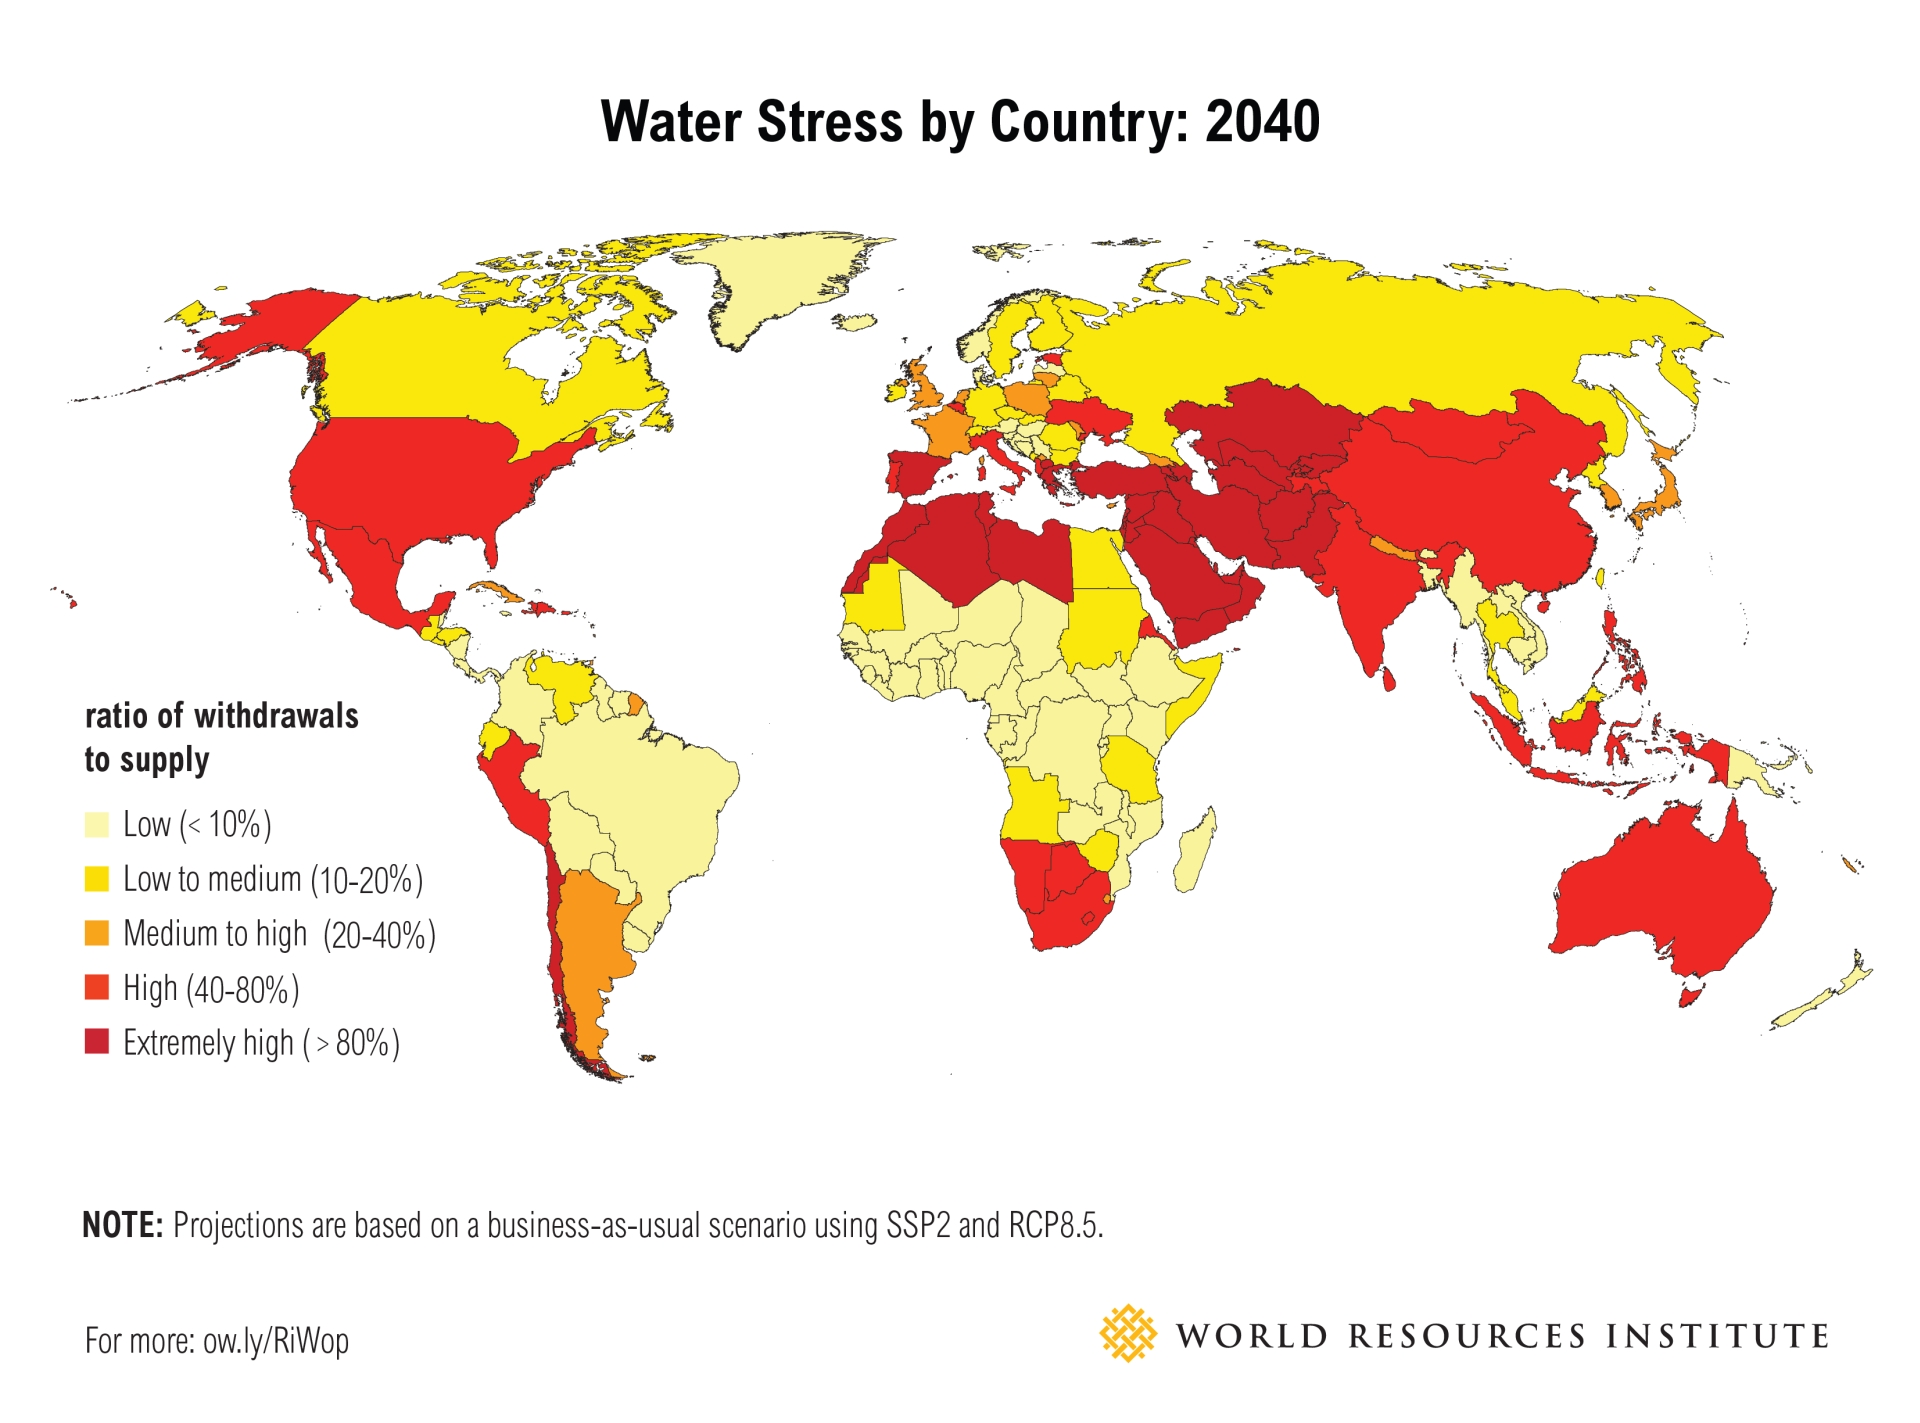 water stress world map 2040